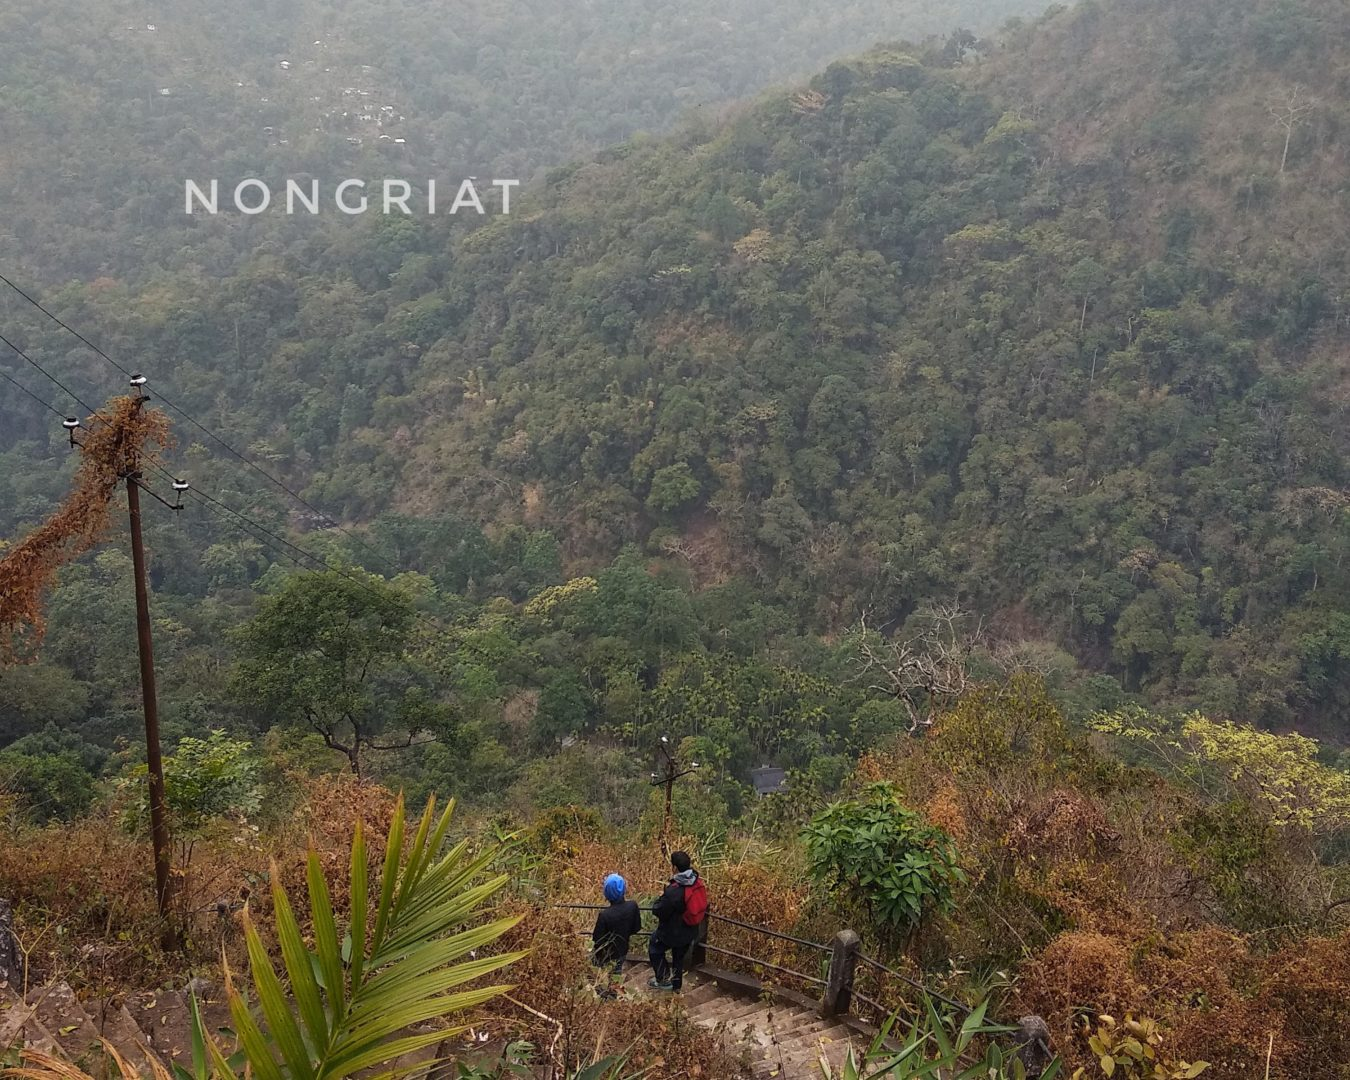 Hike to Nongriat village